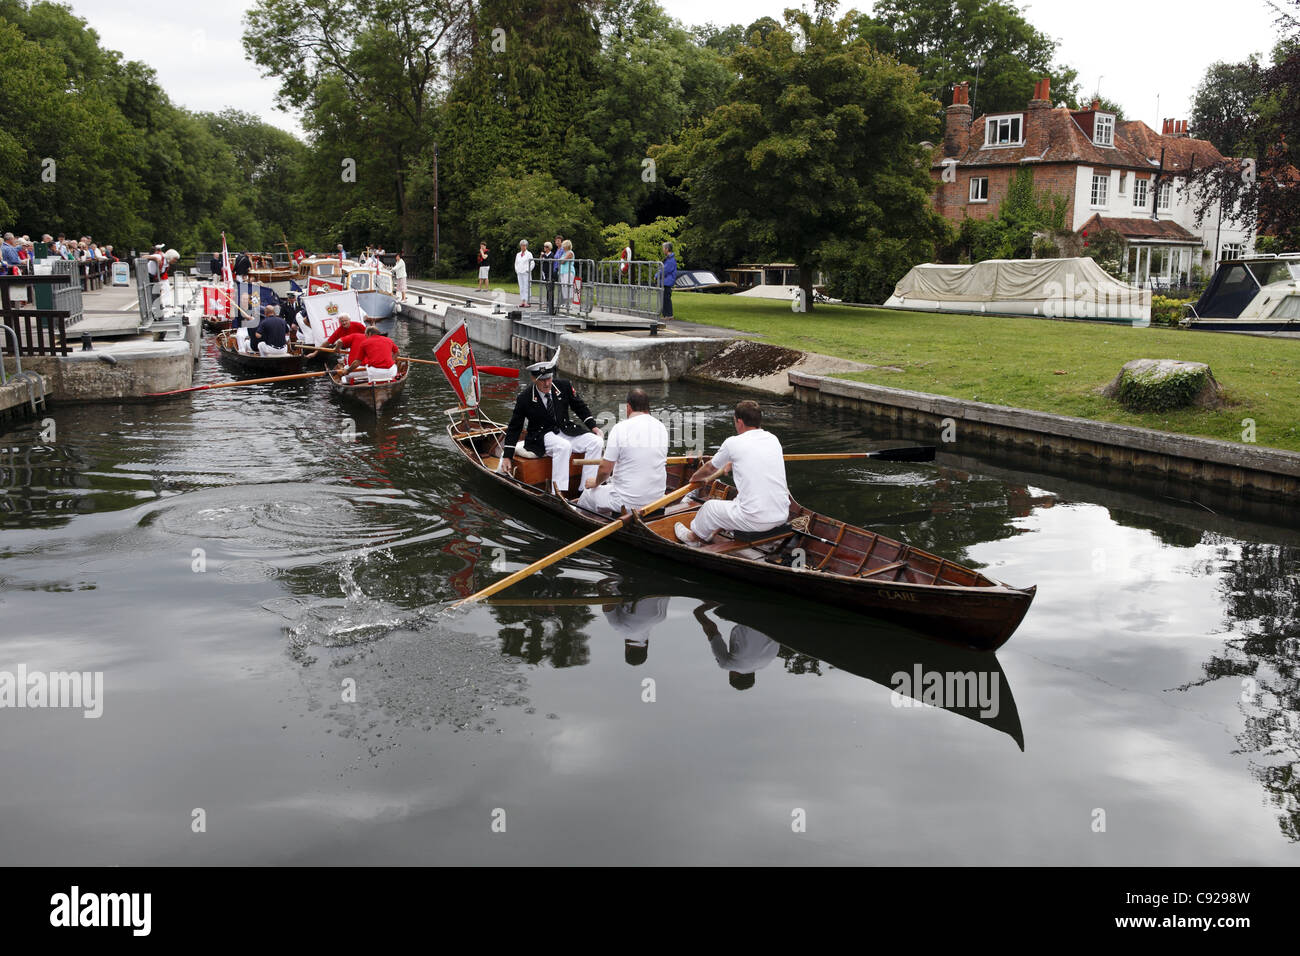 Swan Uppers in their traditional uniforms row skiffs down the river during Swan Upping, River Thames, Henley, England - Stock Image